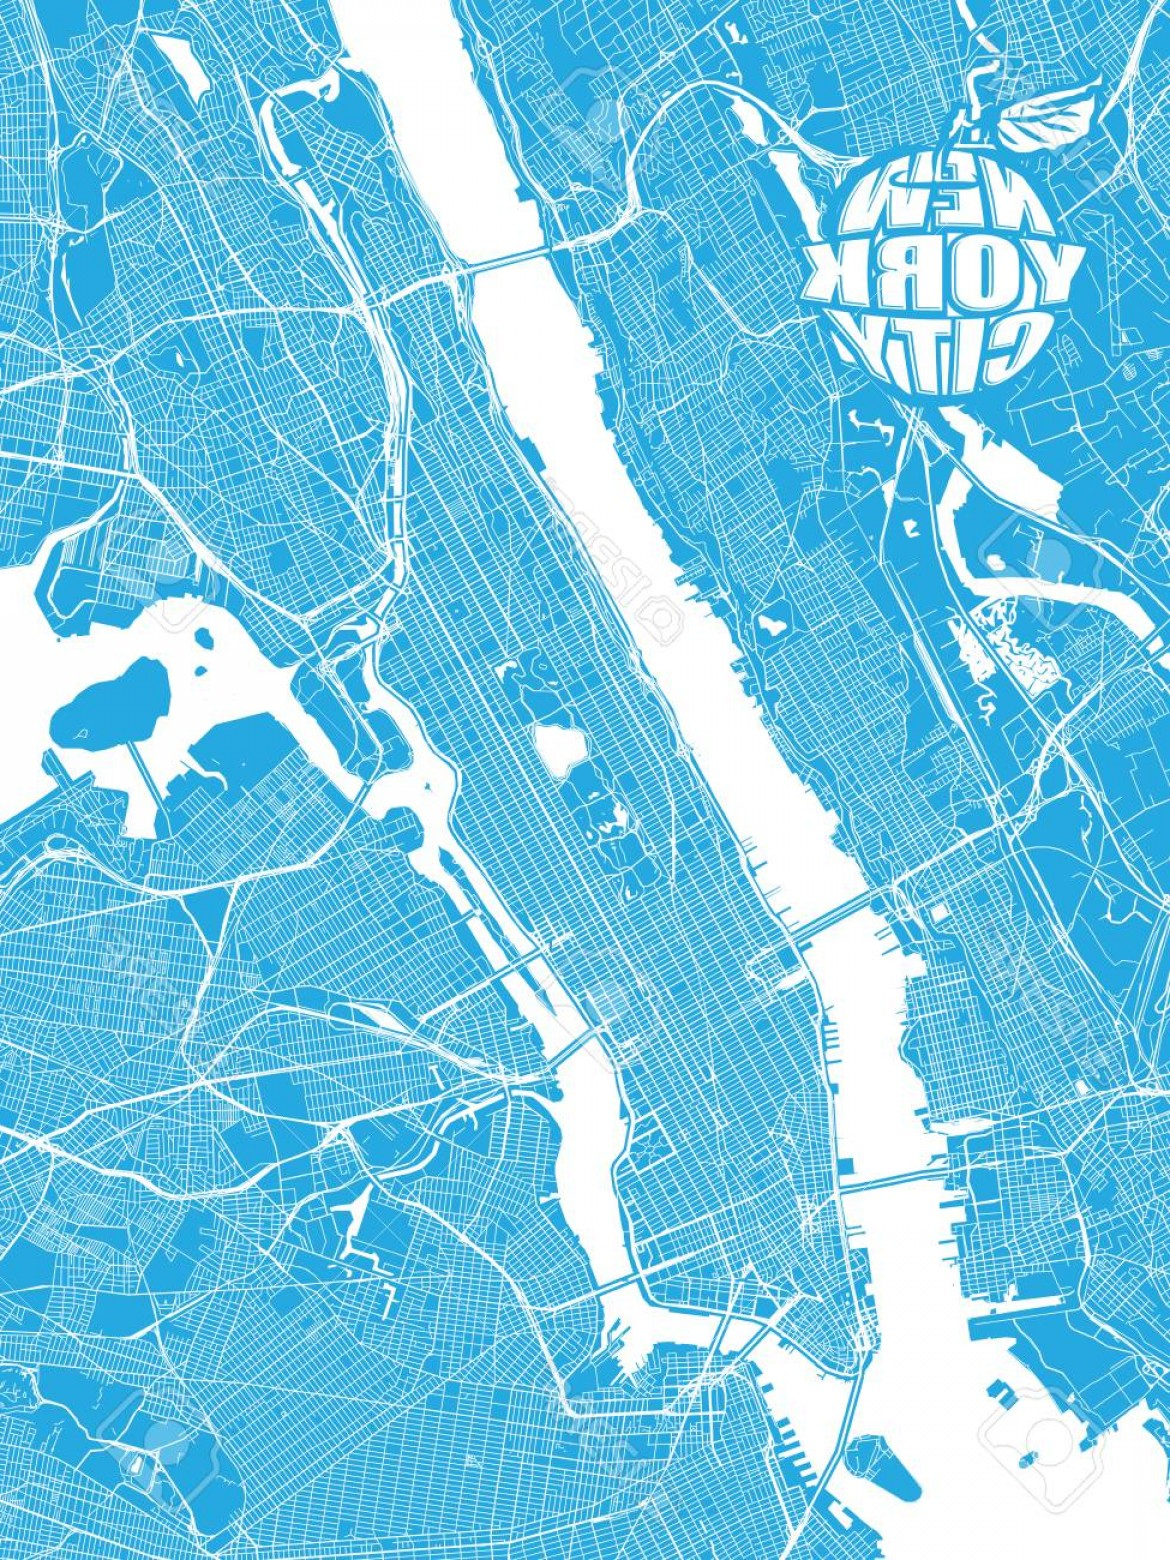 Midtown East Map Vector: Photostock Vector Blue Map Of New York City With Apple Logo Very Detailled Version With Bridges And Without Names Nyc